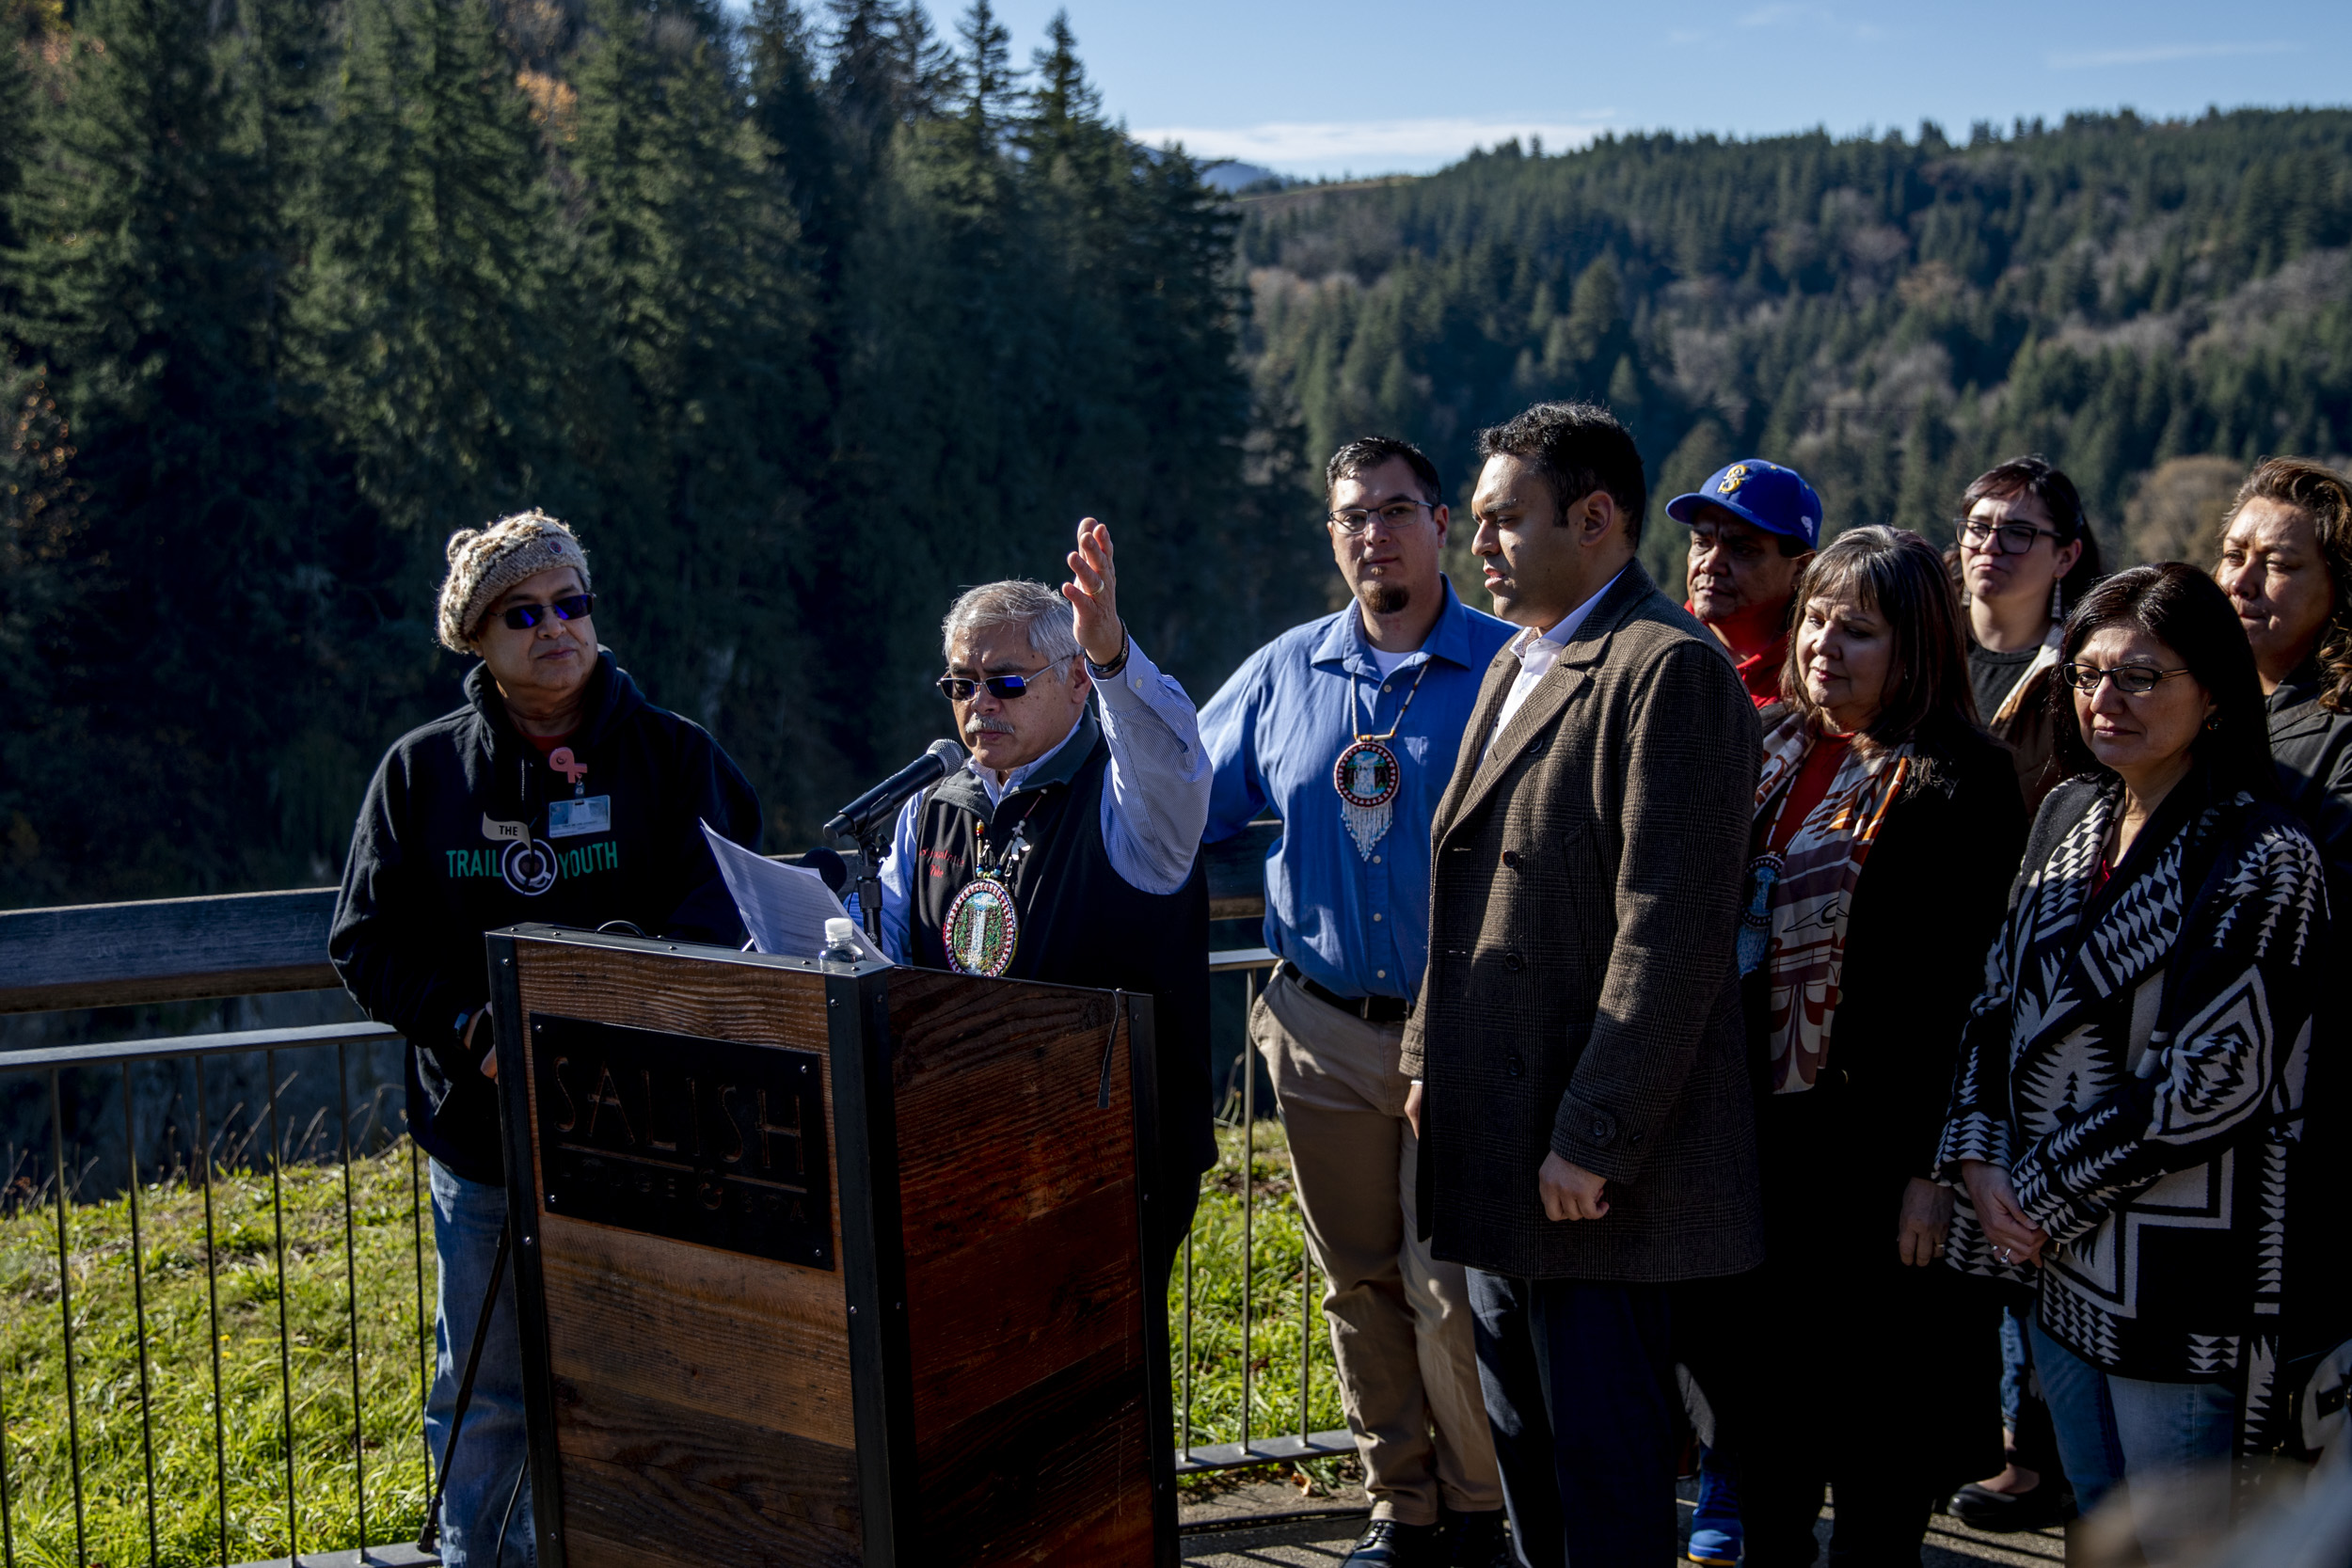 Press conference next to Snoqualmie Falls